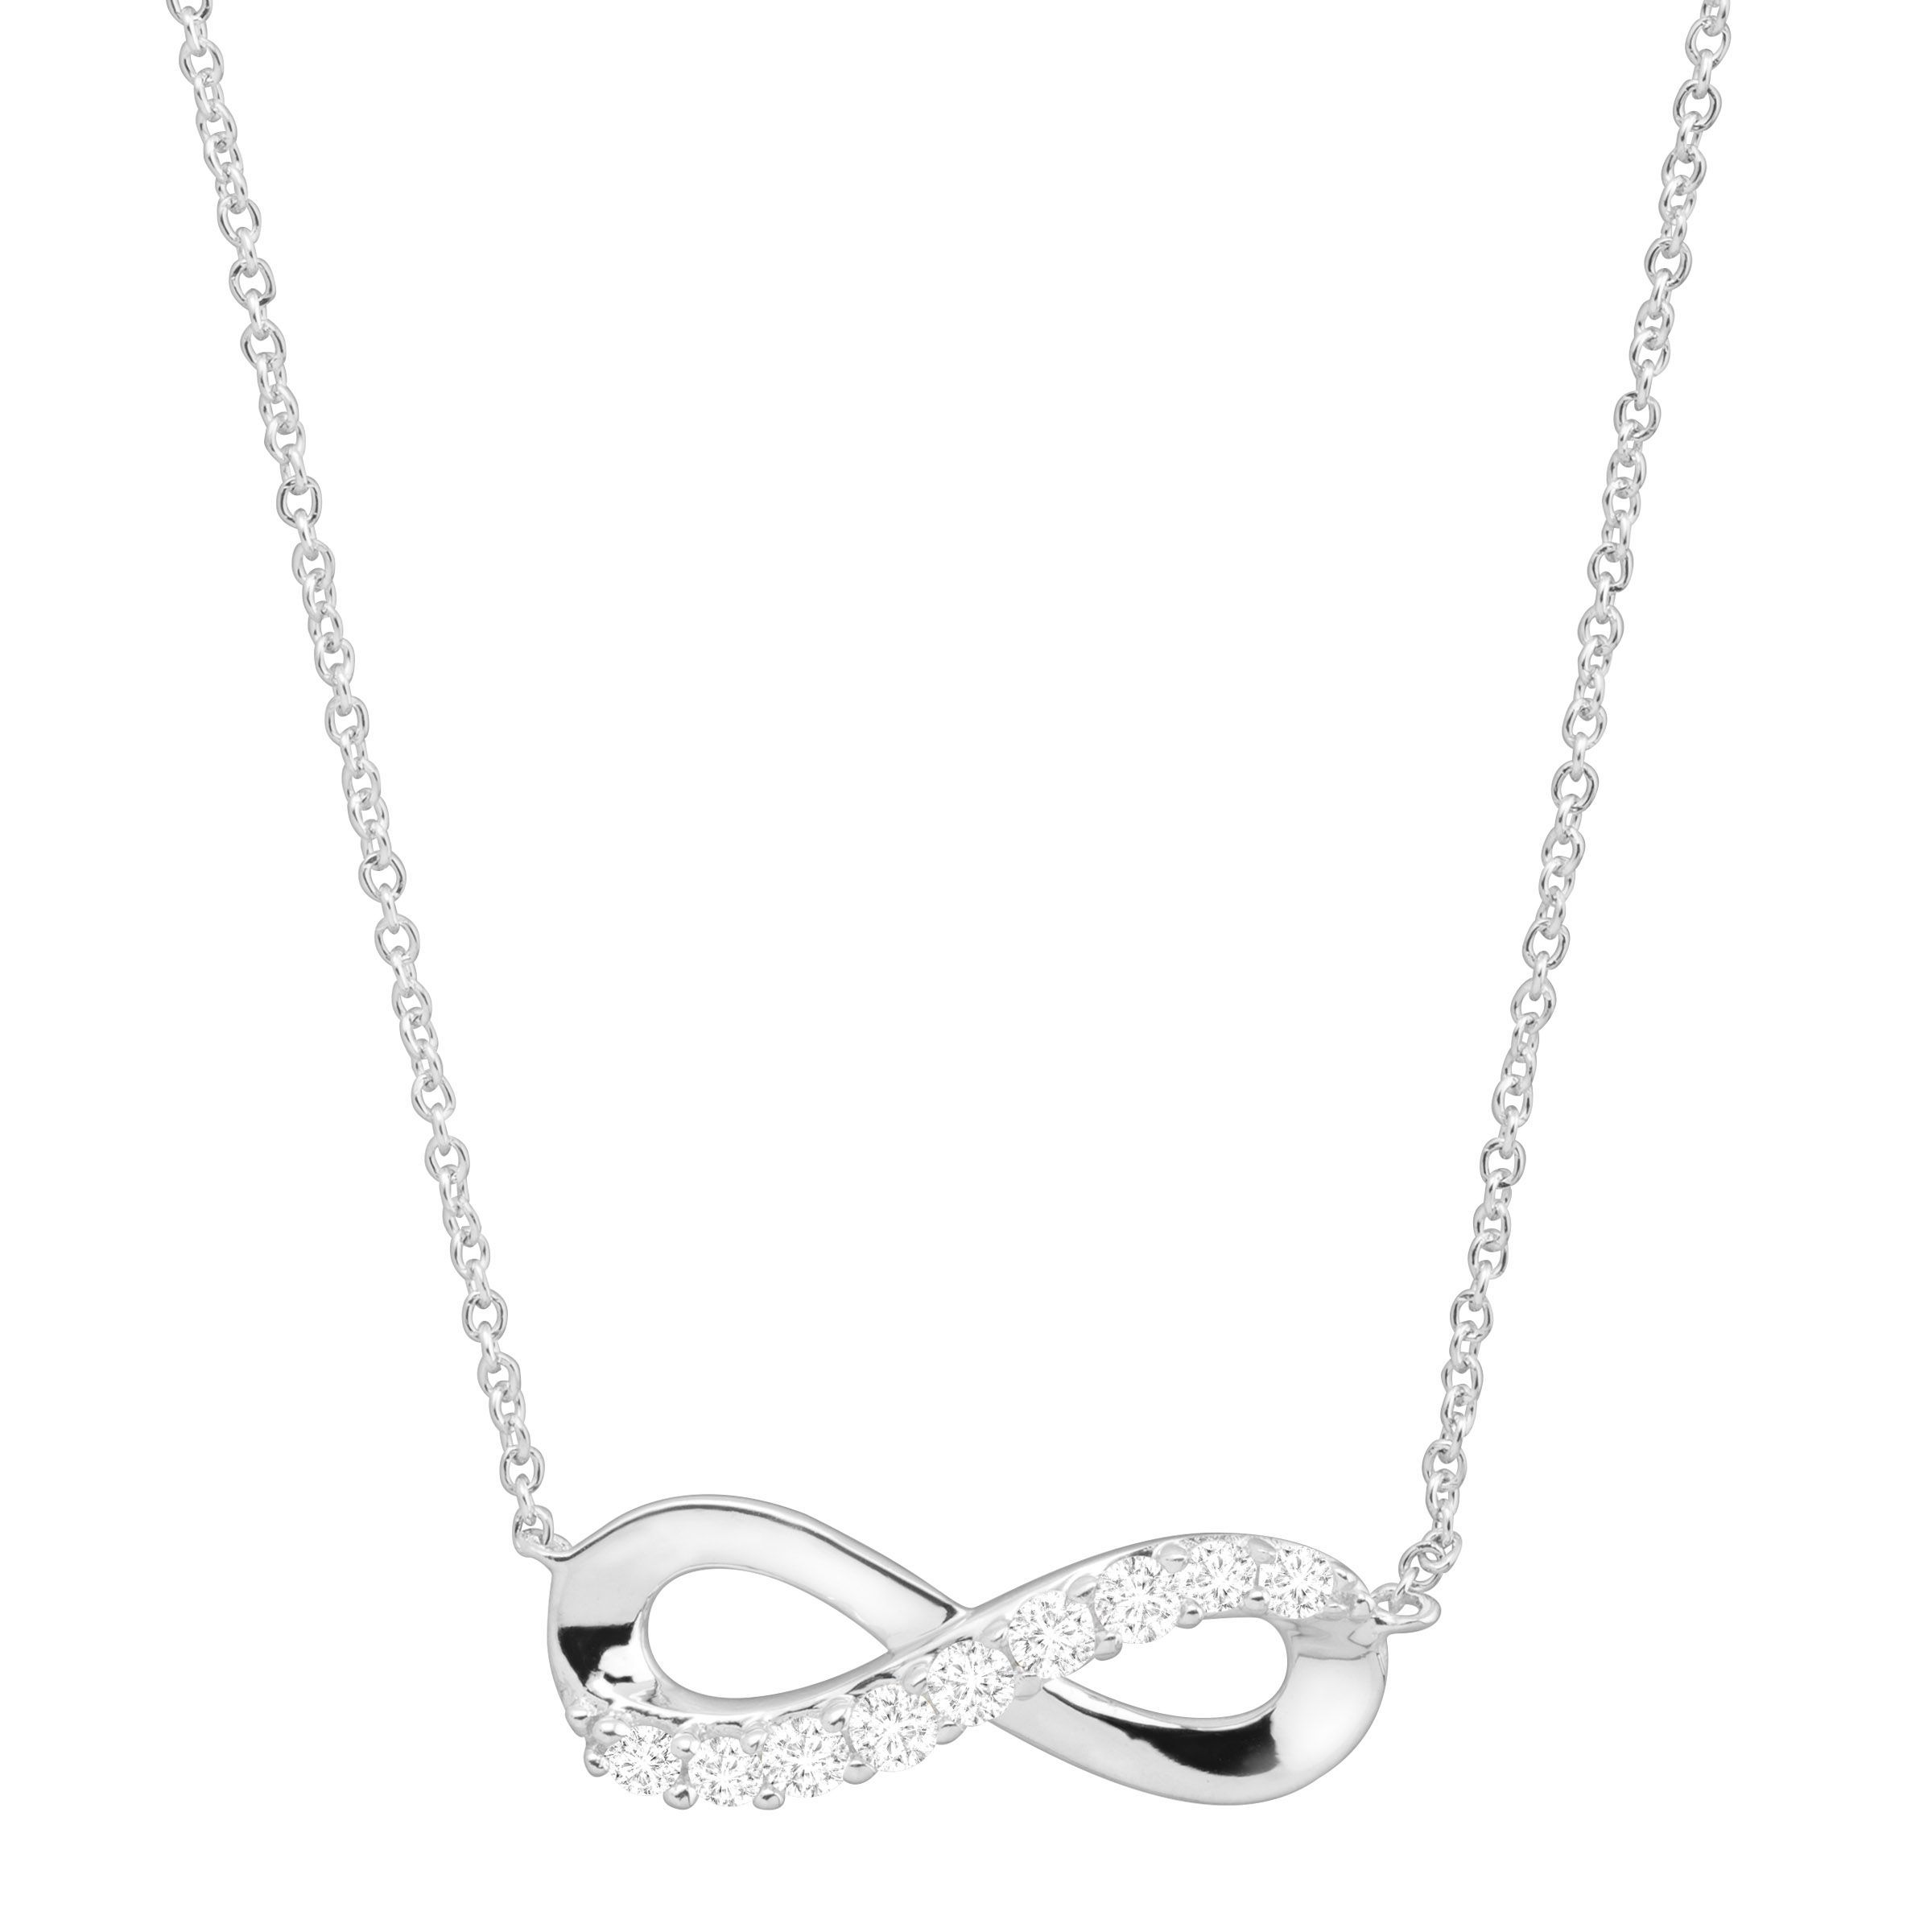 winfinity sterling knot mm silver cz rhodium weight width symbol heart infinity p length wcz w grams plated necklace